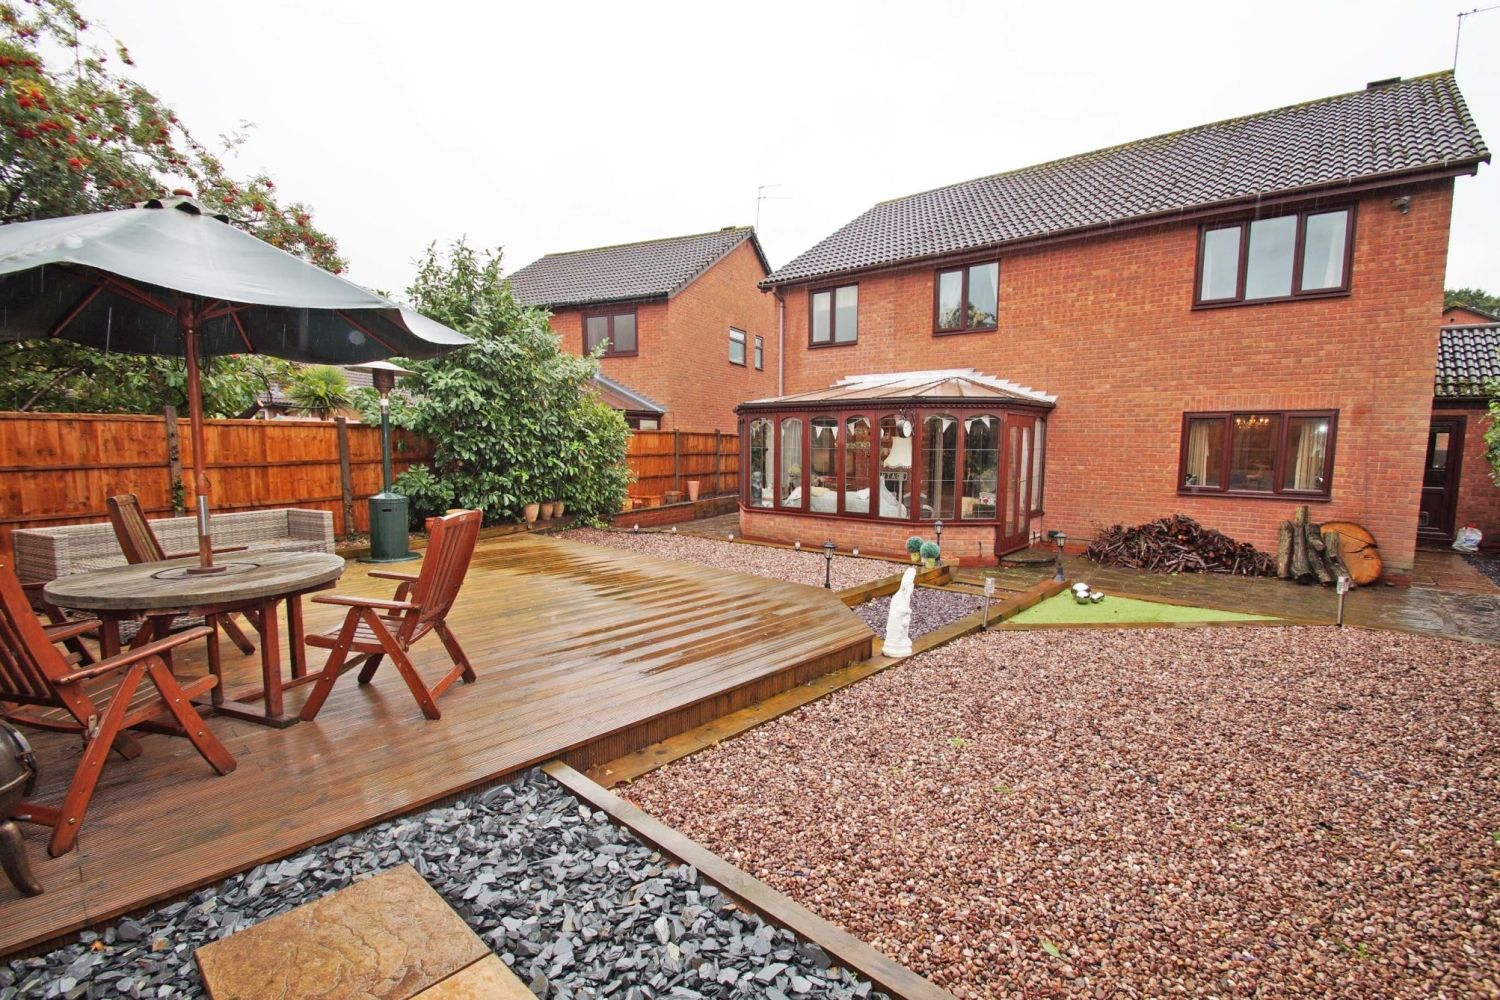 5 bed detached for sale in Melrose Avenue, Oldswinford, Stourbridge  - Property Image 16